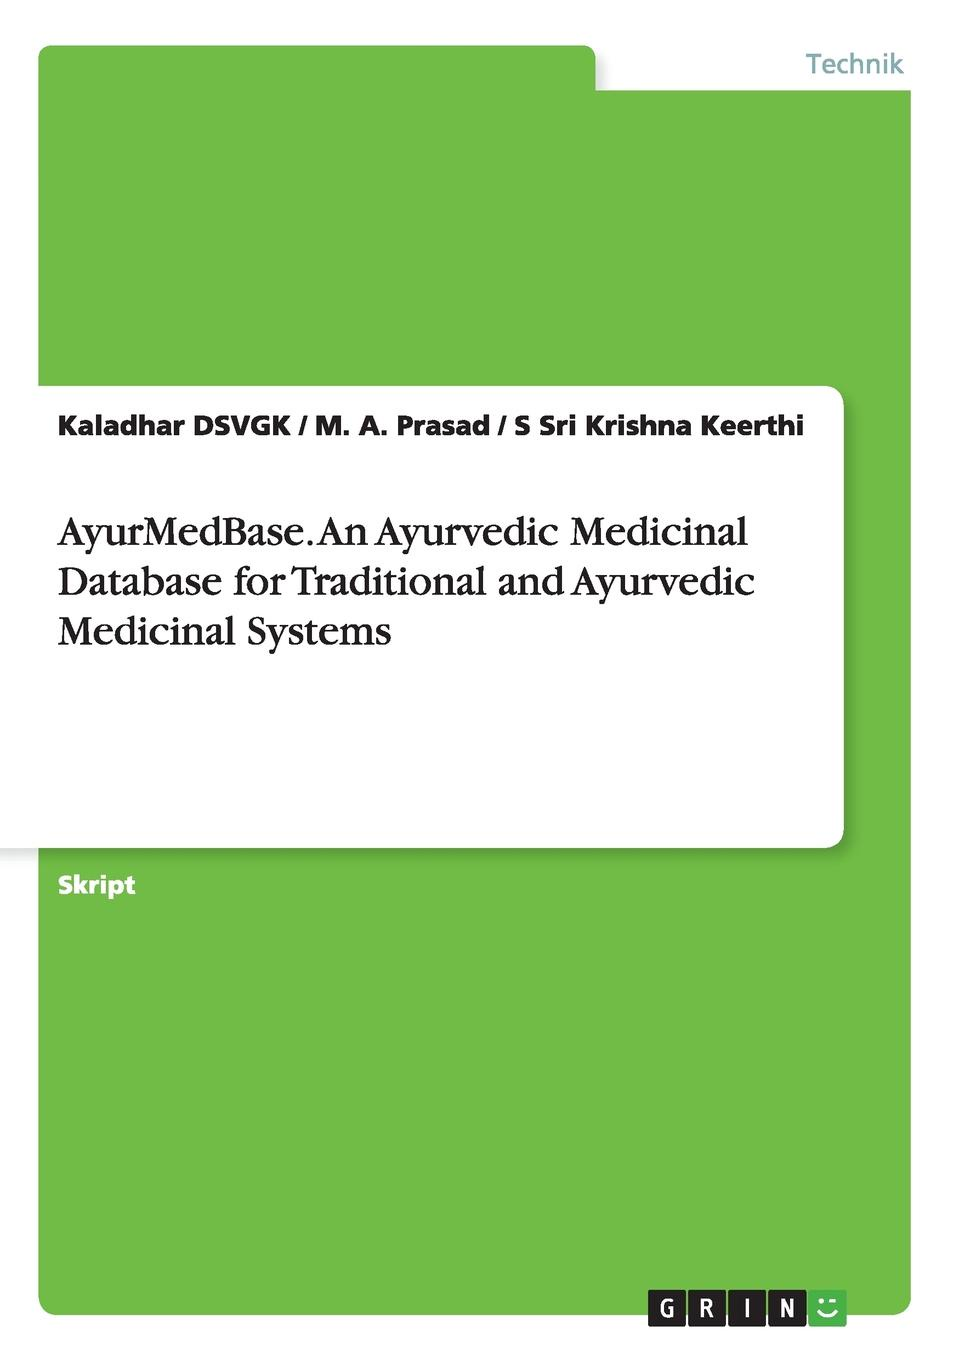 Kaladhar Dsvgk, M. a. Prasad, S. Sri Krishna Keerthi Ayurmedbase. an Ayurvedic Medicinal Database for Traditional and Ayurvedic Medicinal Systems недорго, оригинальная цена